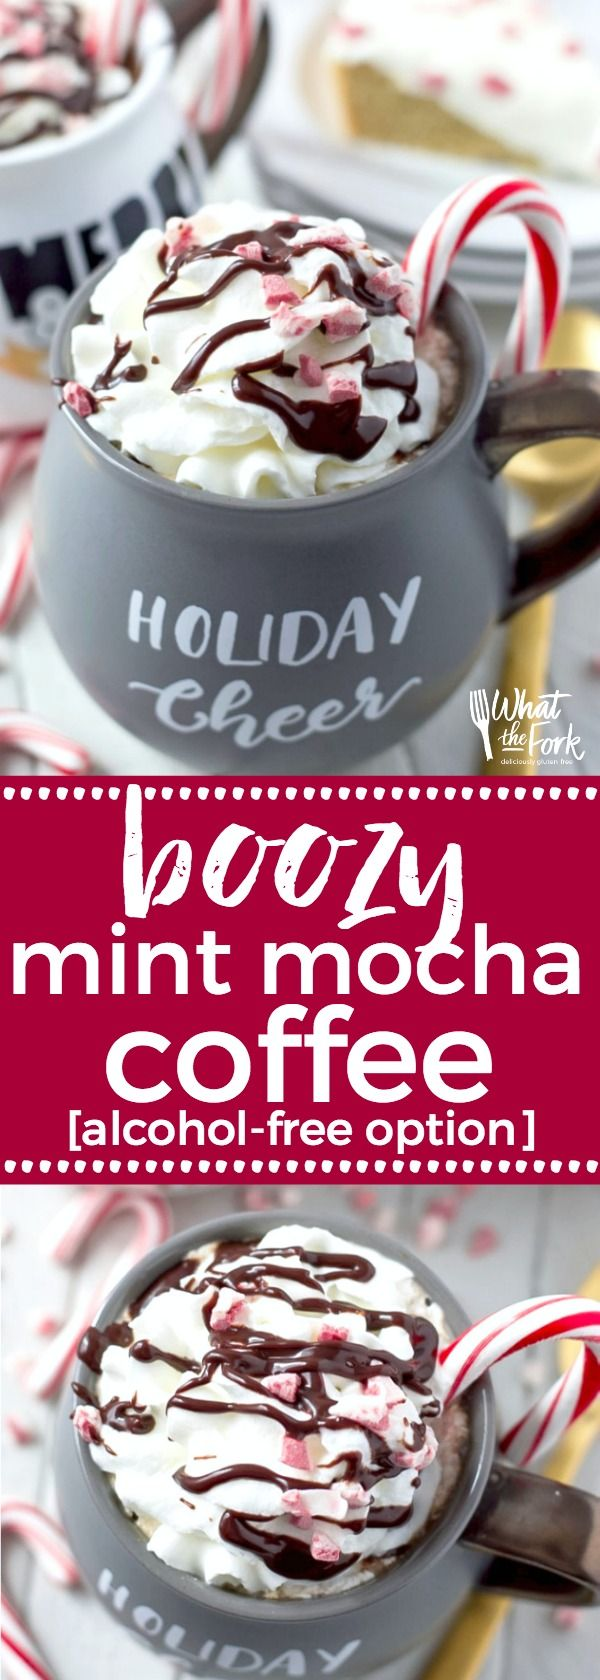 Mint Mocha Coffee recipe - a homemade coffee drink that looks more complicated than it is - it's super easy to make! Perfect for Christmas and cold weather drinking with an option to turn it into a cocktail. From @whattheforkblog | whattheforkfoodblog.com | Sponsored | coffee drinks | how to make a mocha at home | hot chocolate | hot cocoa | coffee cocktails | winter drinks | hot drinks | coffee with hot cocoa